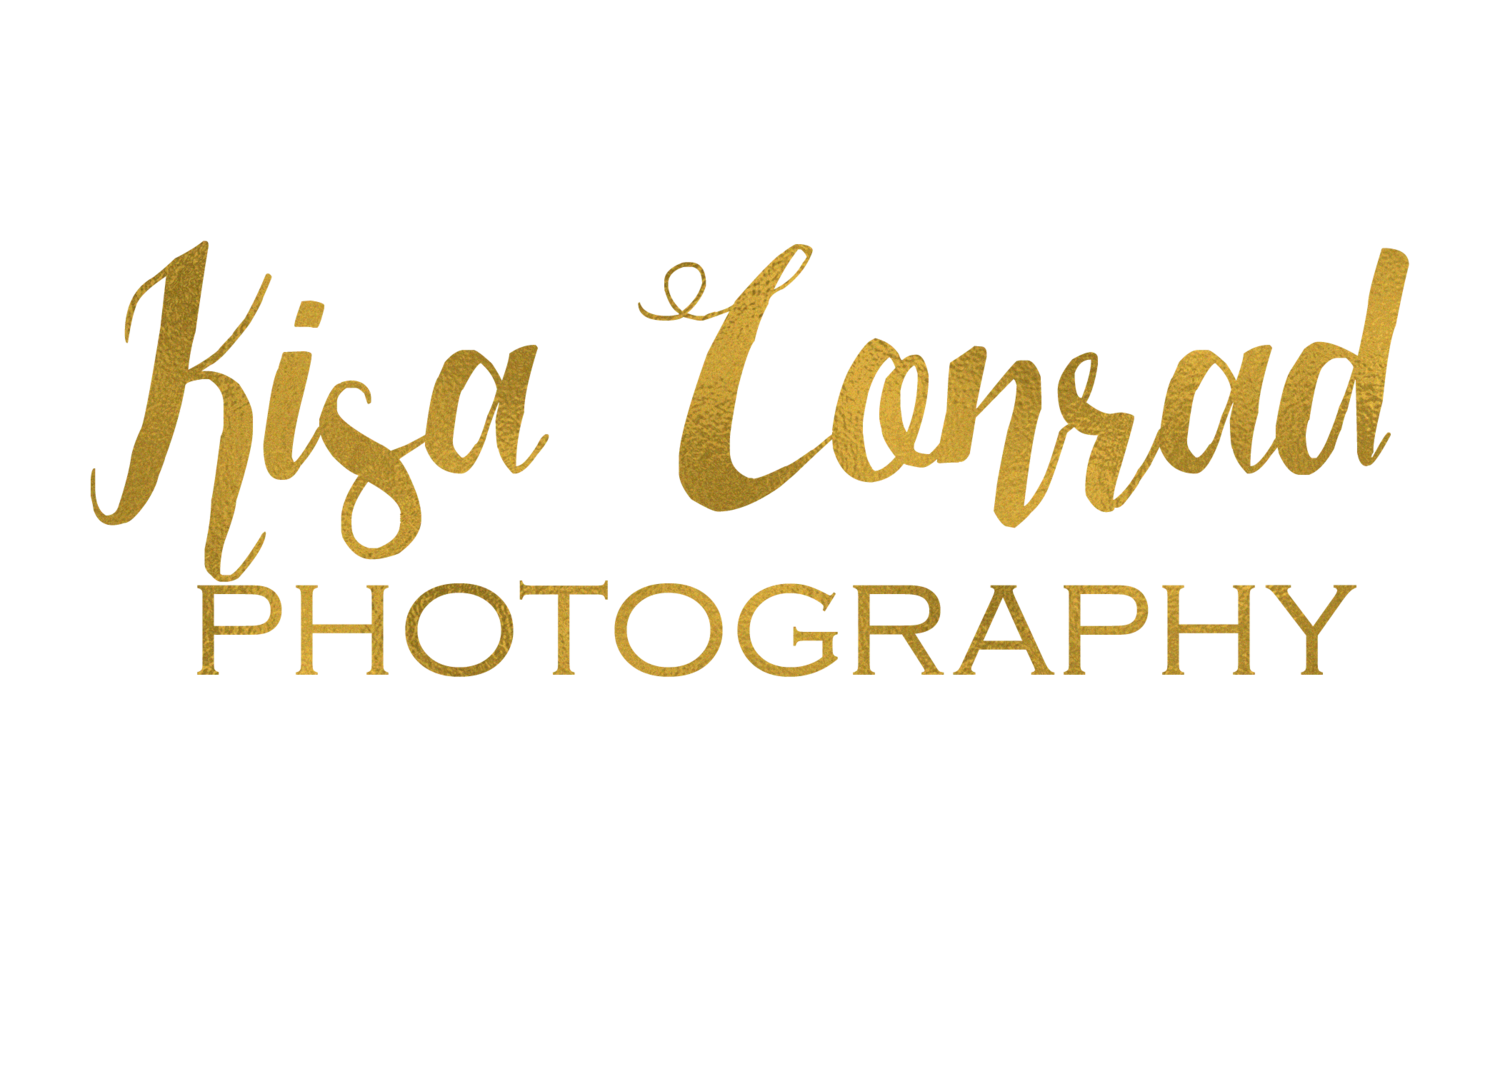 Kisa Conrad Photography